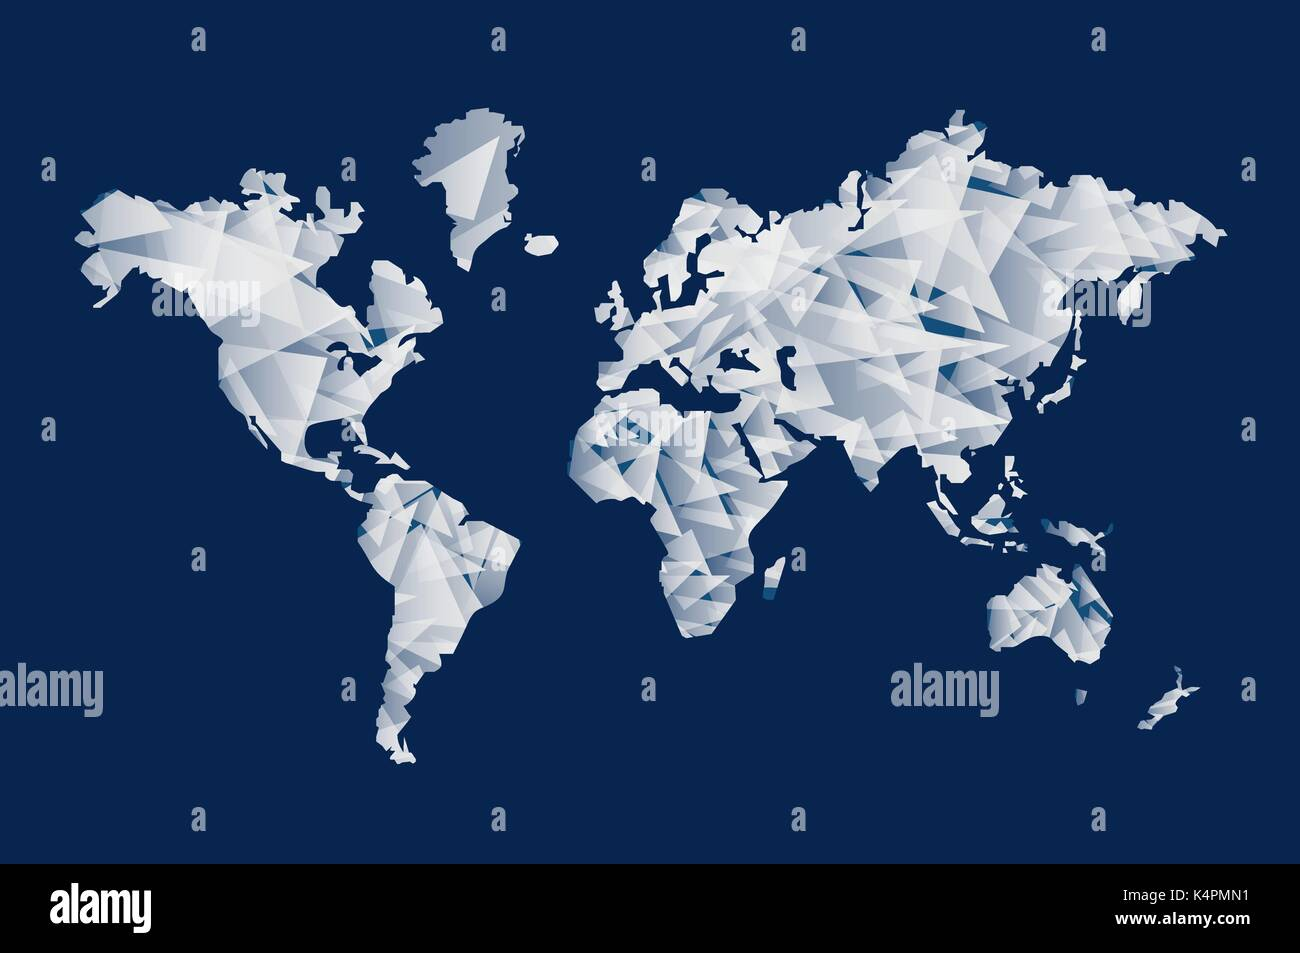 abstract world map illustration template made of triangle shapes